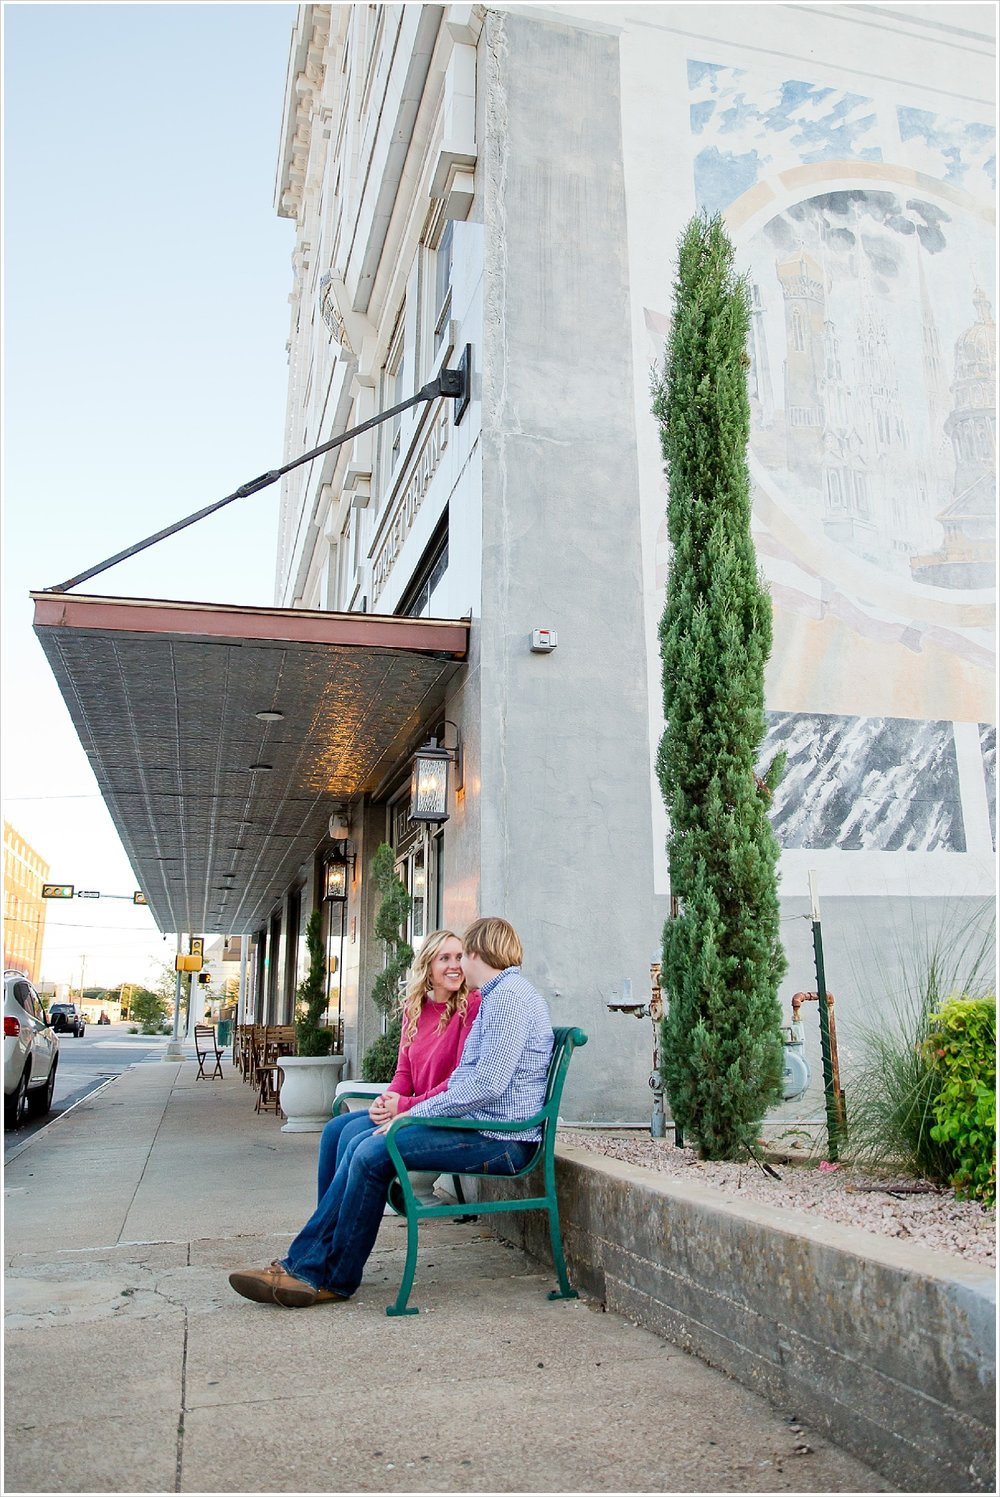 Couple portraits in downtown | Love Photography in Waco, Texas | Jason & Melaina Photography